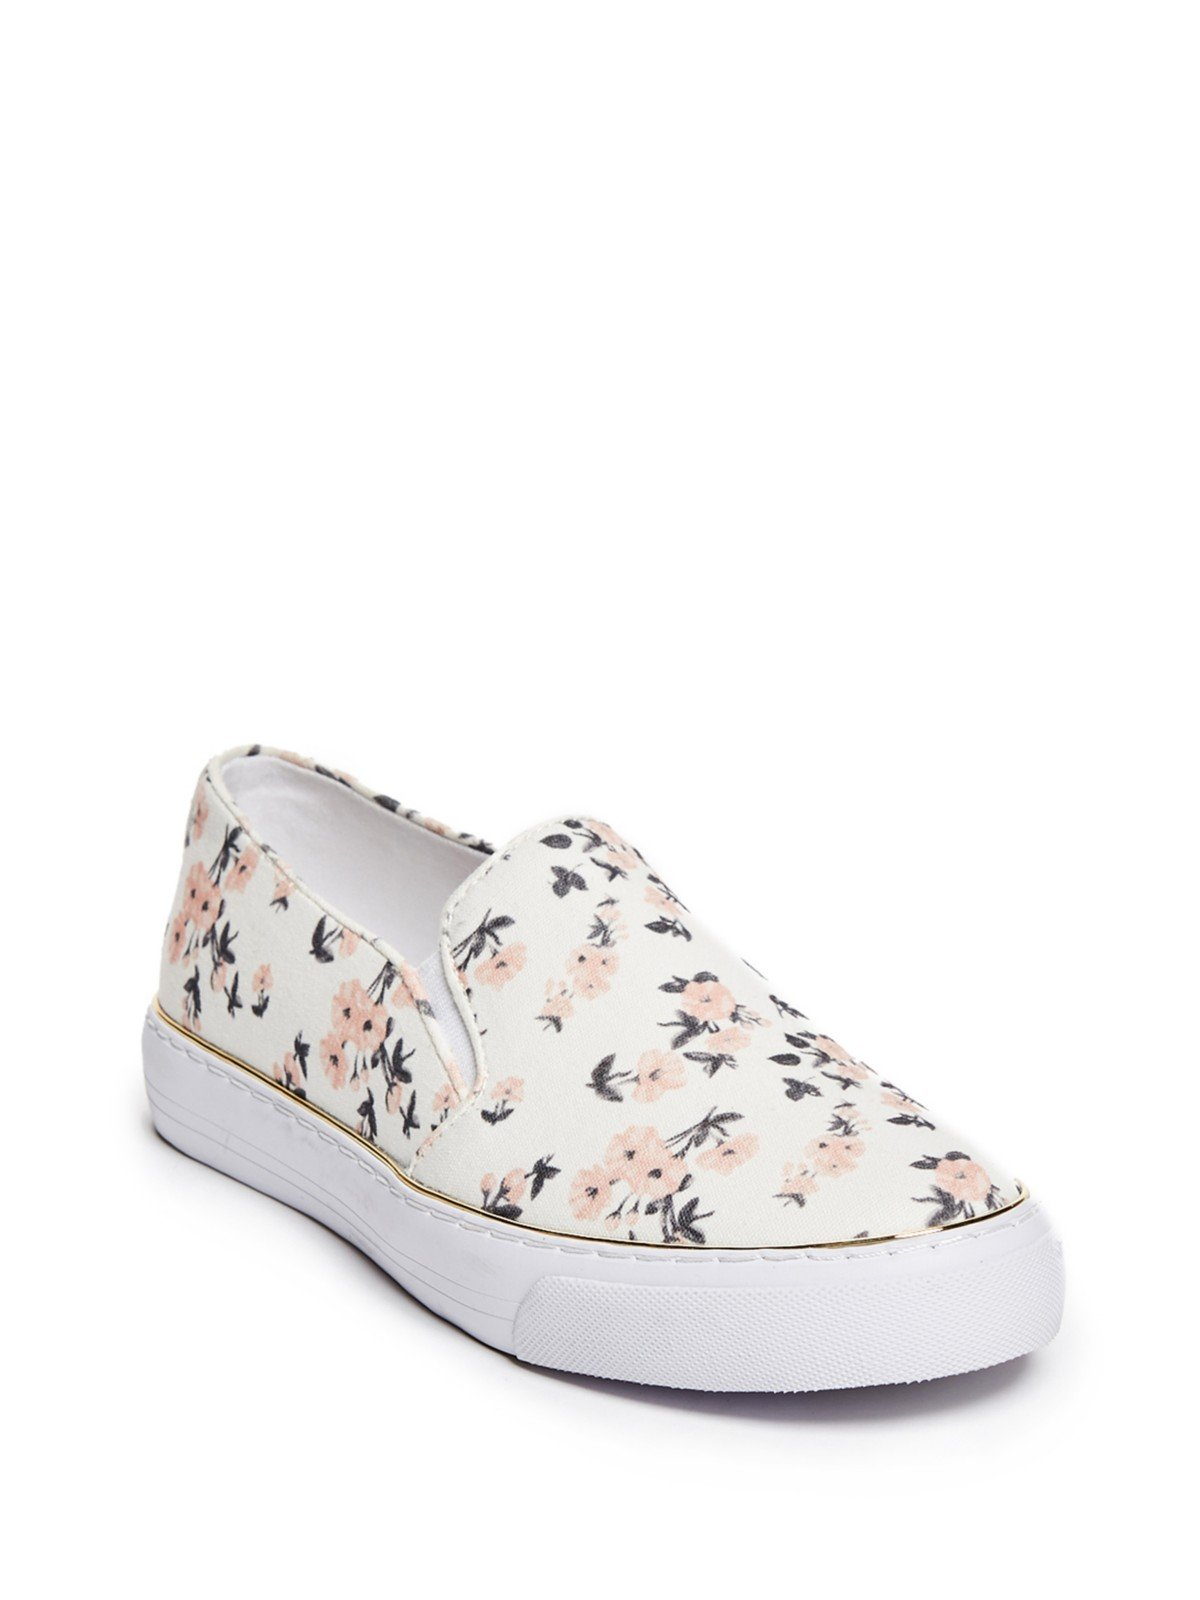 GUESS Factory Women's Gladis Floral Slip-On Sneakers